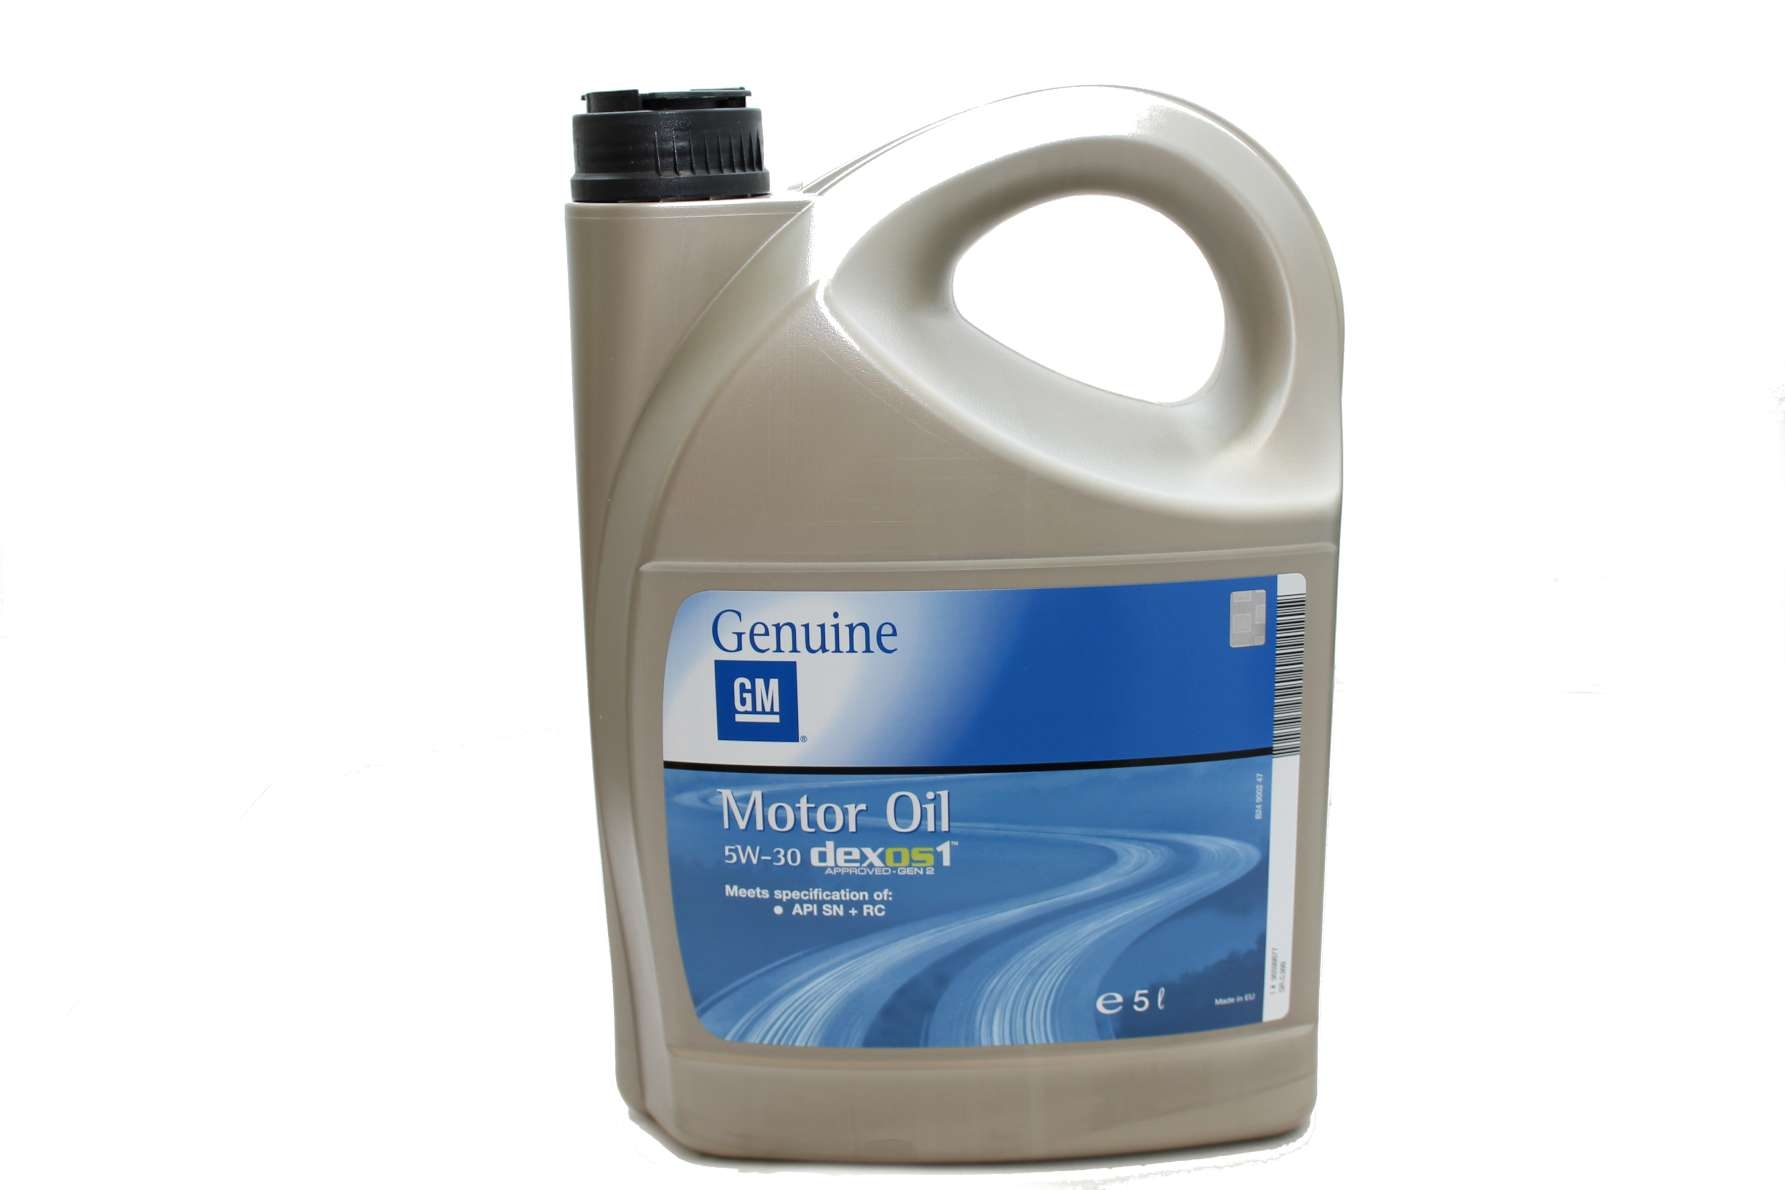 original opel gm 5w 30 dexos 1 longlife gen2 engine oil 95599877 5 litre 5w30 ebay. Black Bedroom Furniture Sets. Home Design Ideas